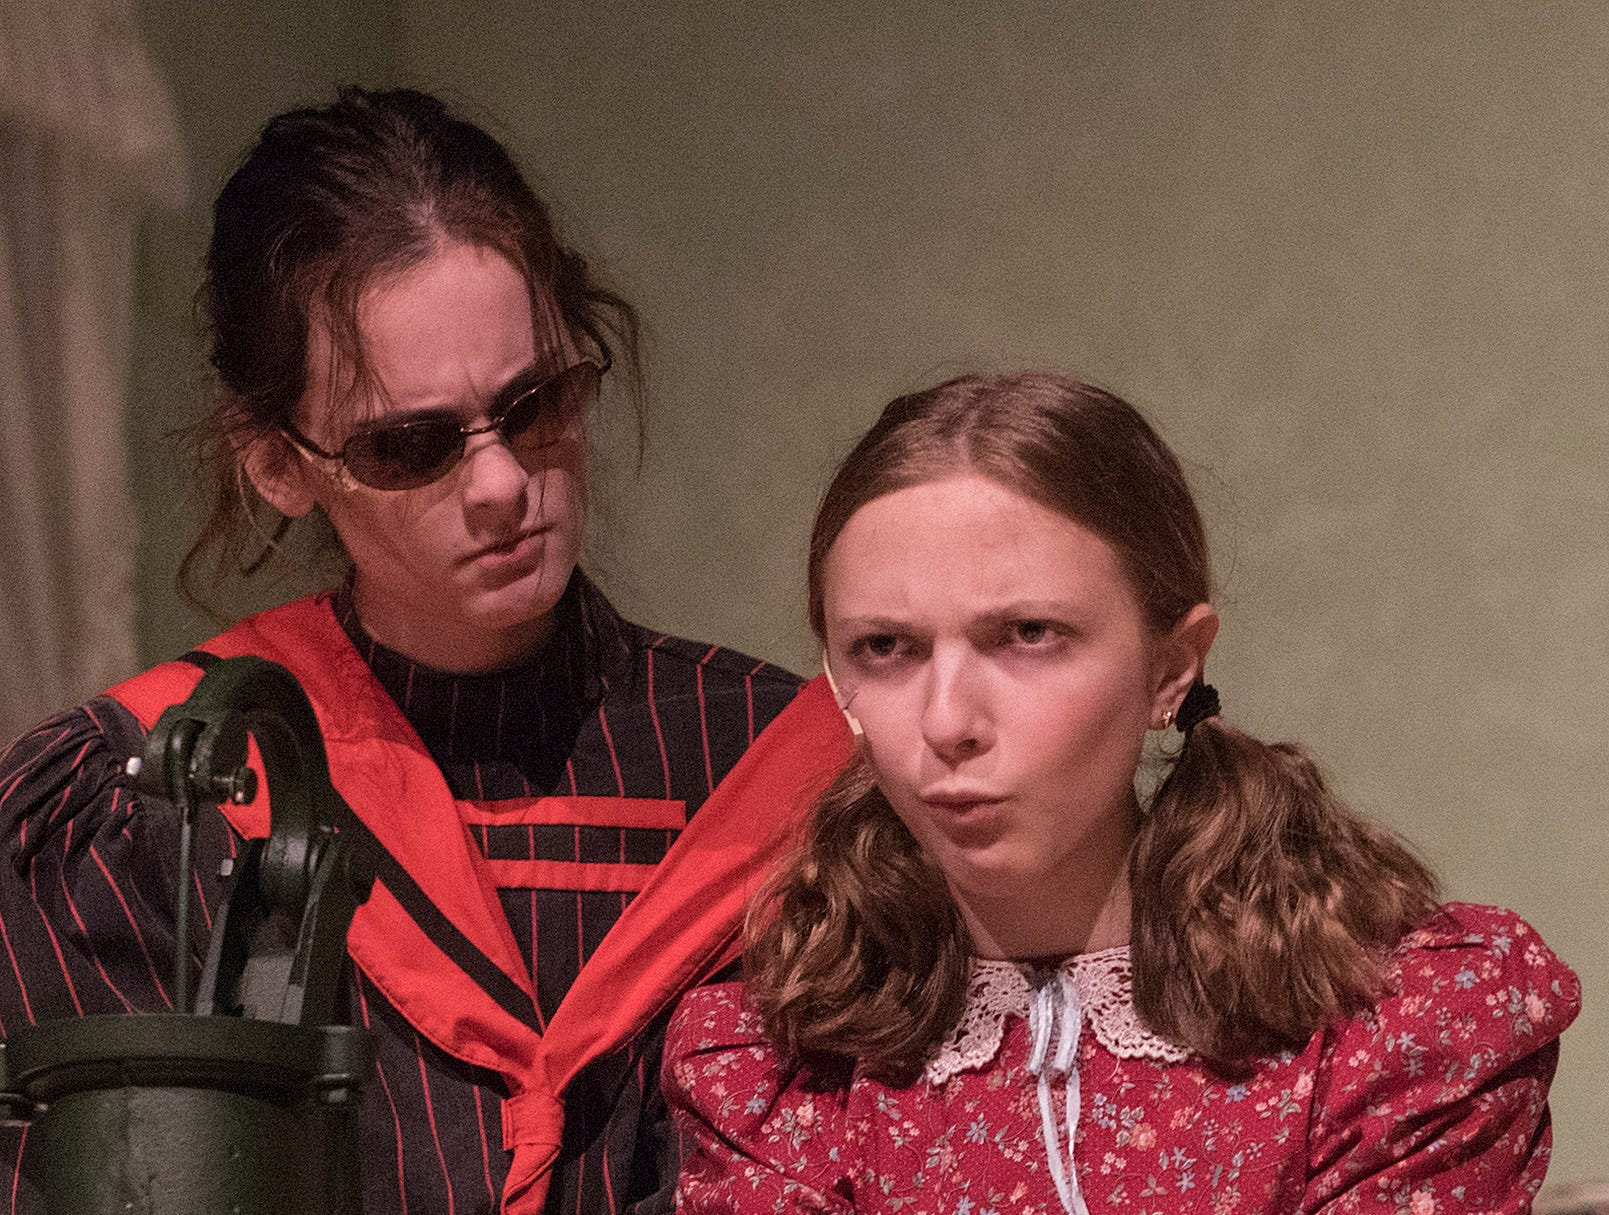 The breakthrough. Water. Helen (Jillian Bocketti) finally connects letters and words with objects. Annie Sullivan's (Caitlin Griffin) weeks of struggle pay off.